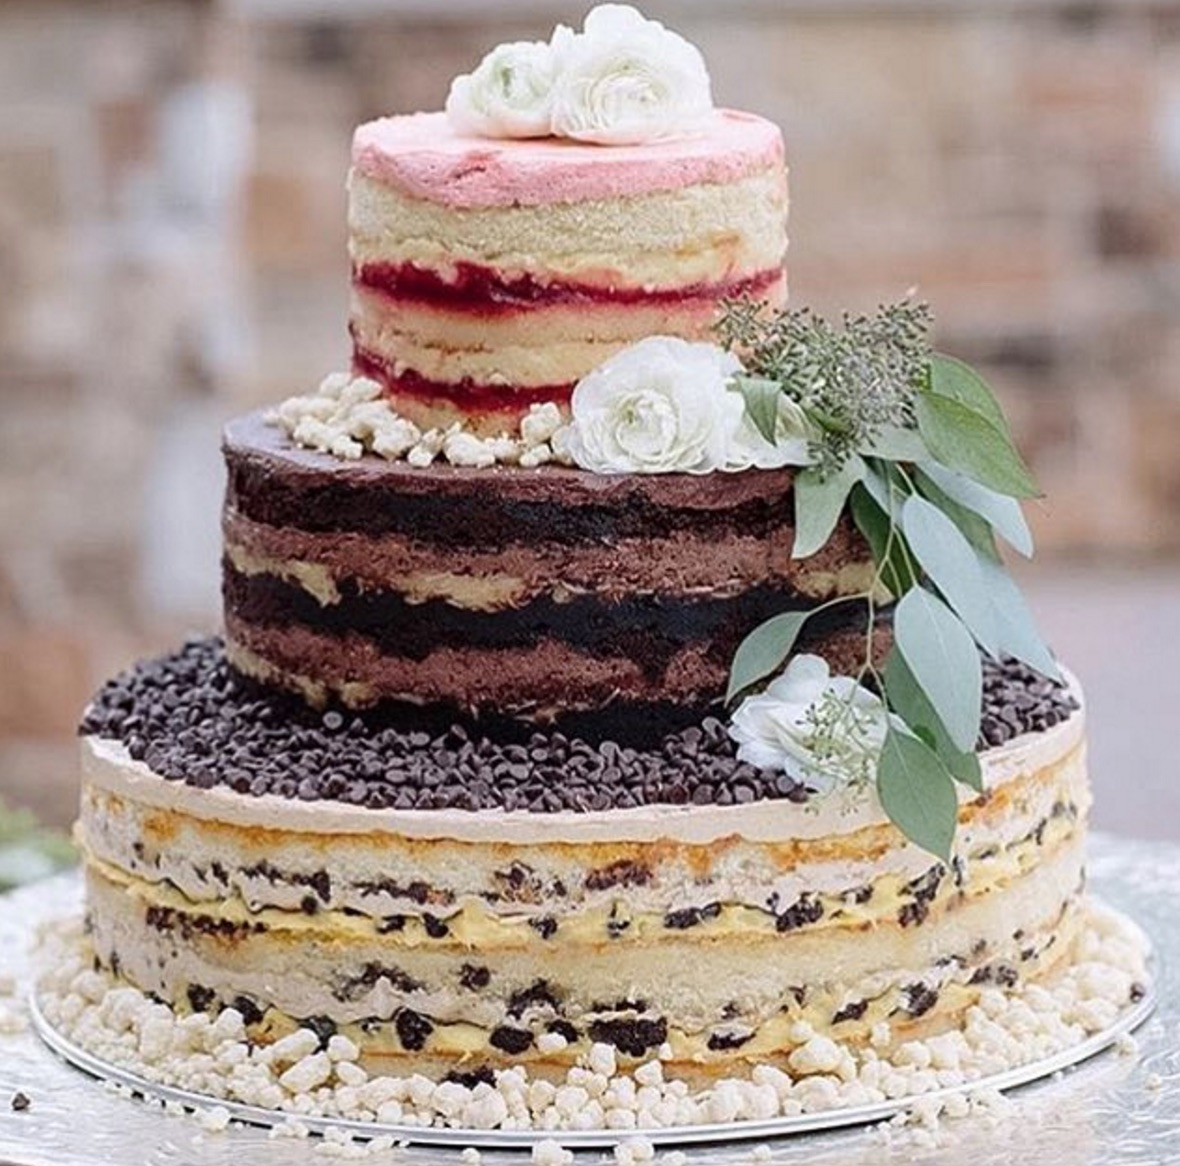 Why are so many people hating on this wedding cake trend?